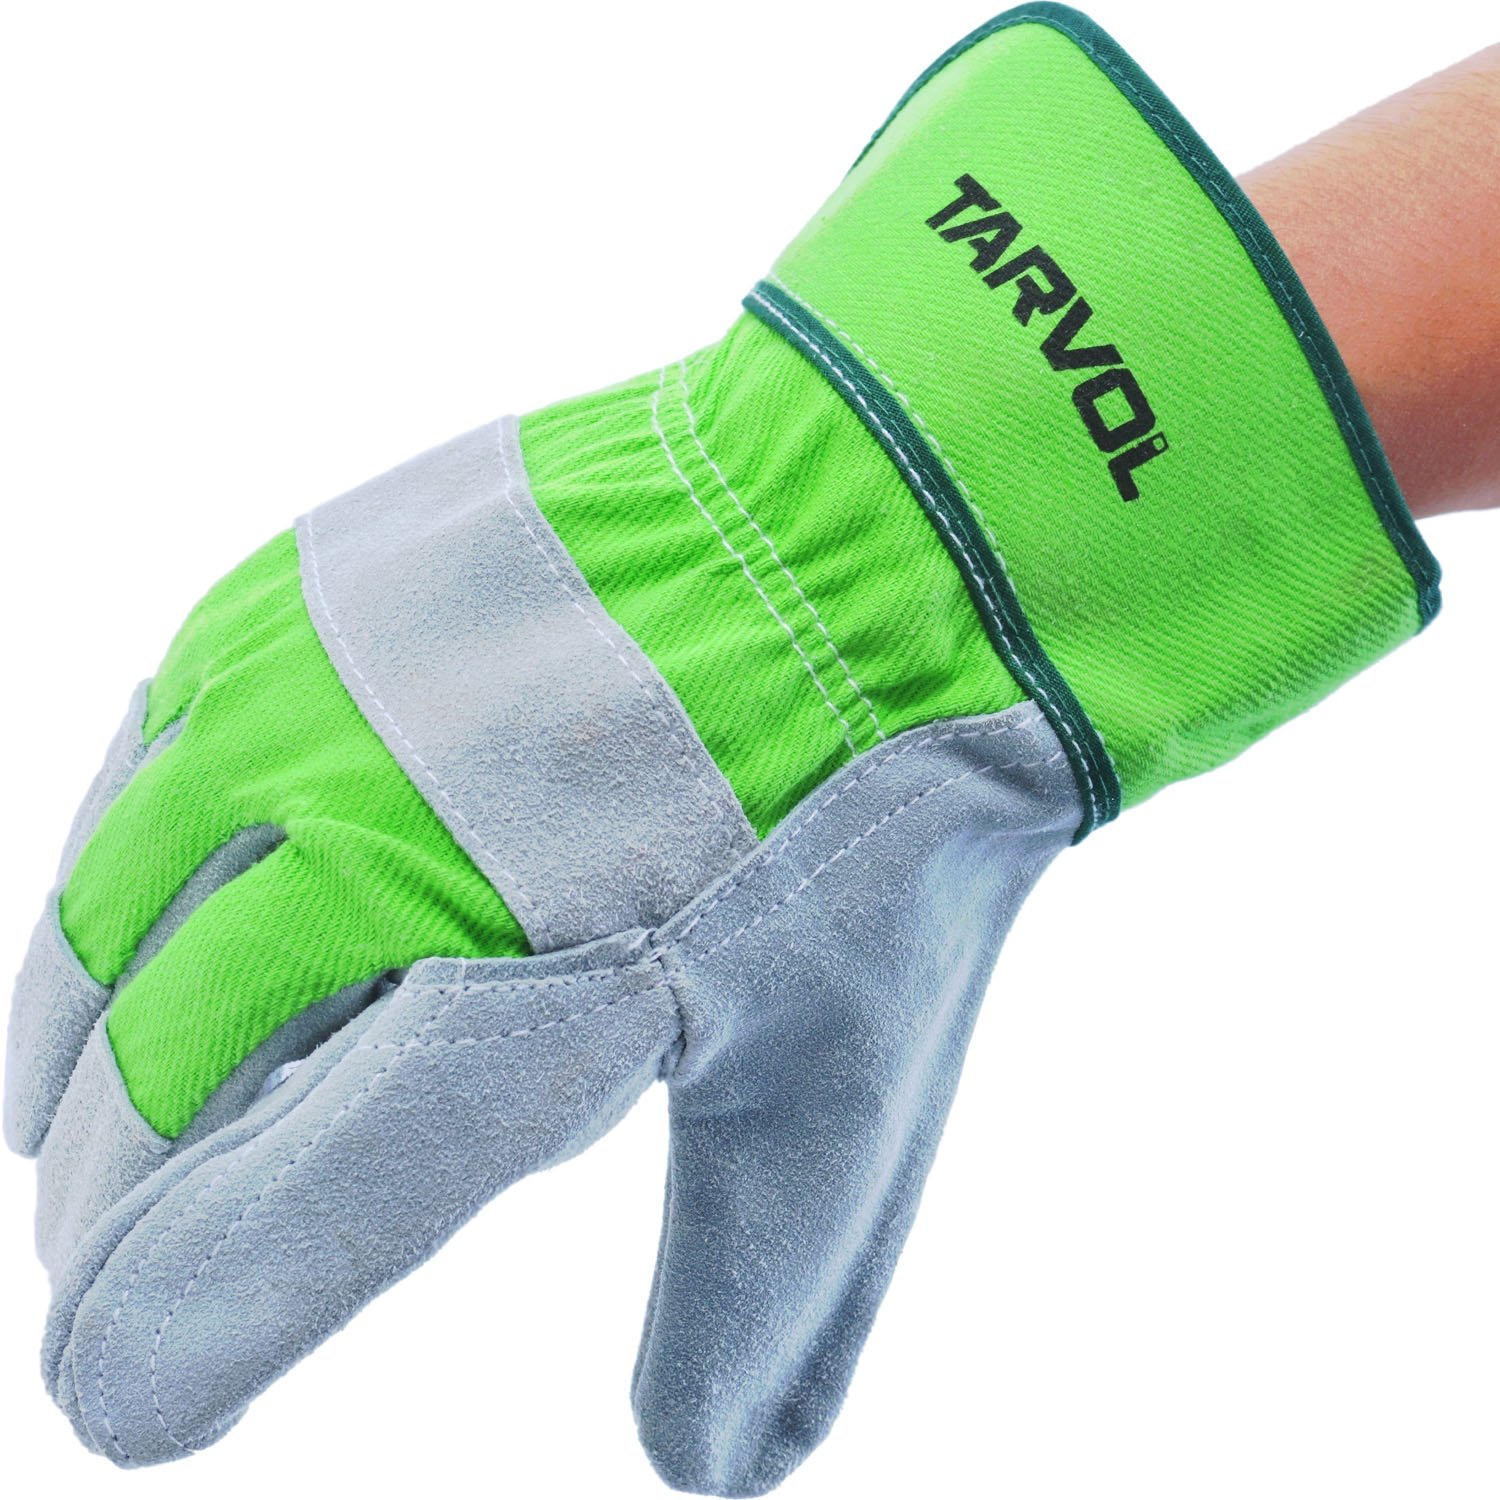 Leather work gloves sale - Leather Work Gloves Split Leather Design Heavy Duty Industrial Safety Gloves Fits Both Men Women All Season Summer Winter